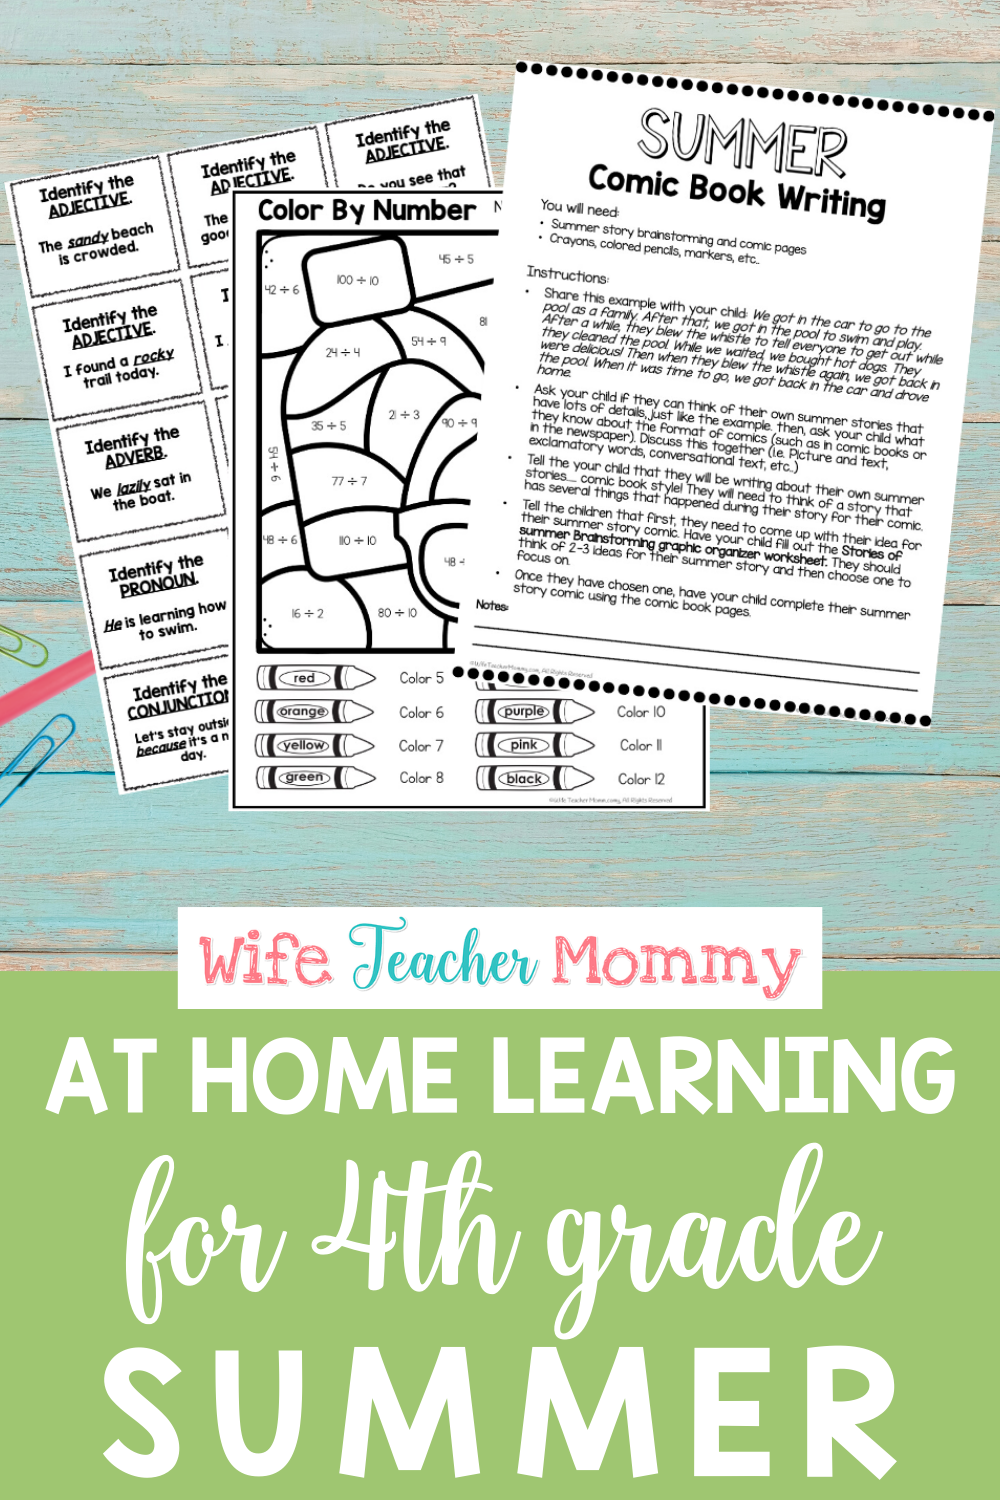 4th Grade Summer Learning: Summer Review Packet   Summer learning packet [ 1500 x 1000 Pixel ]